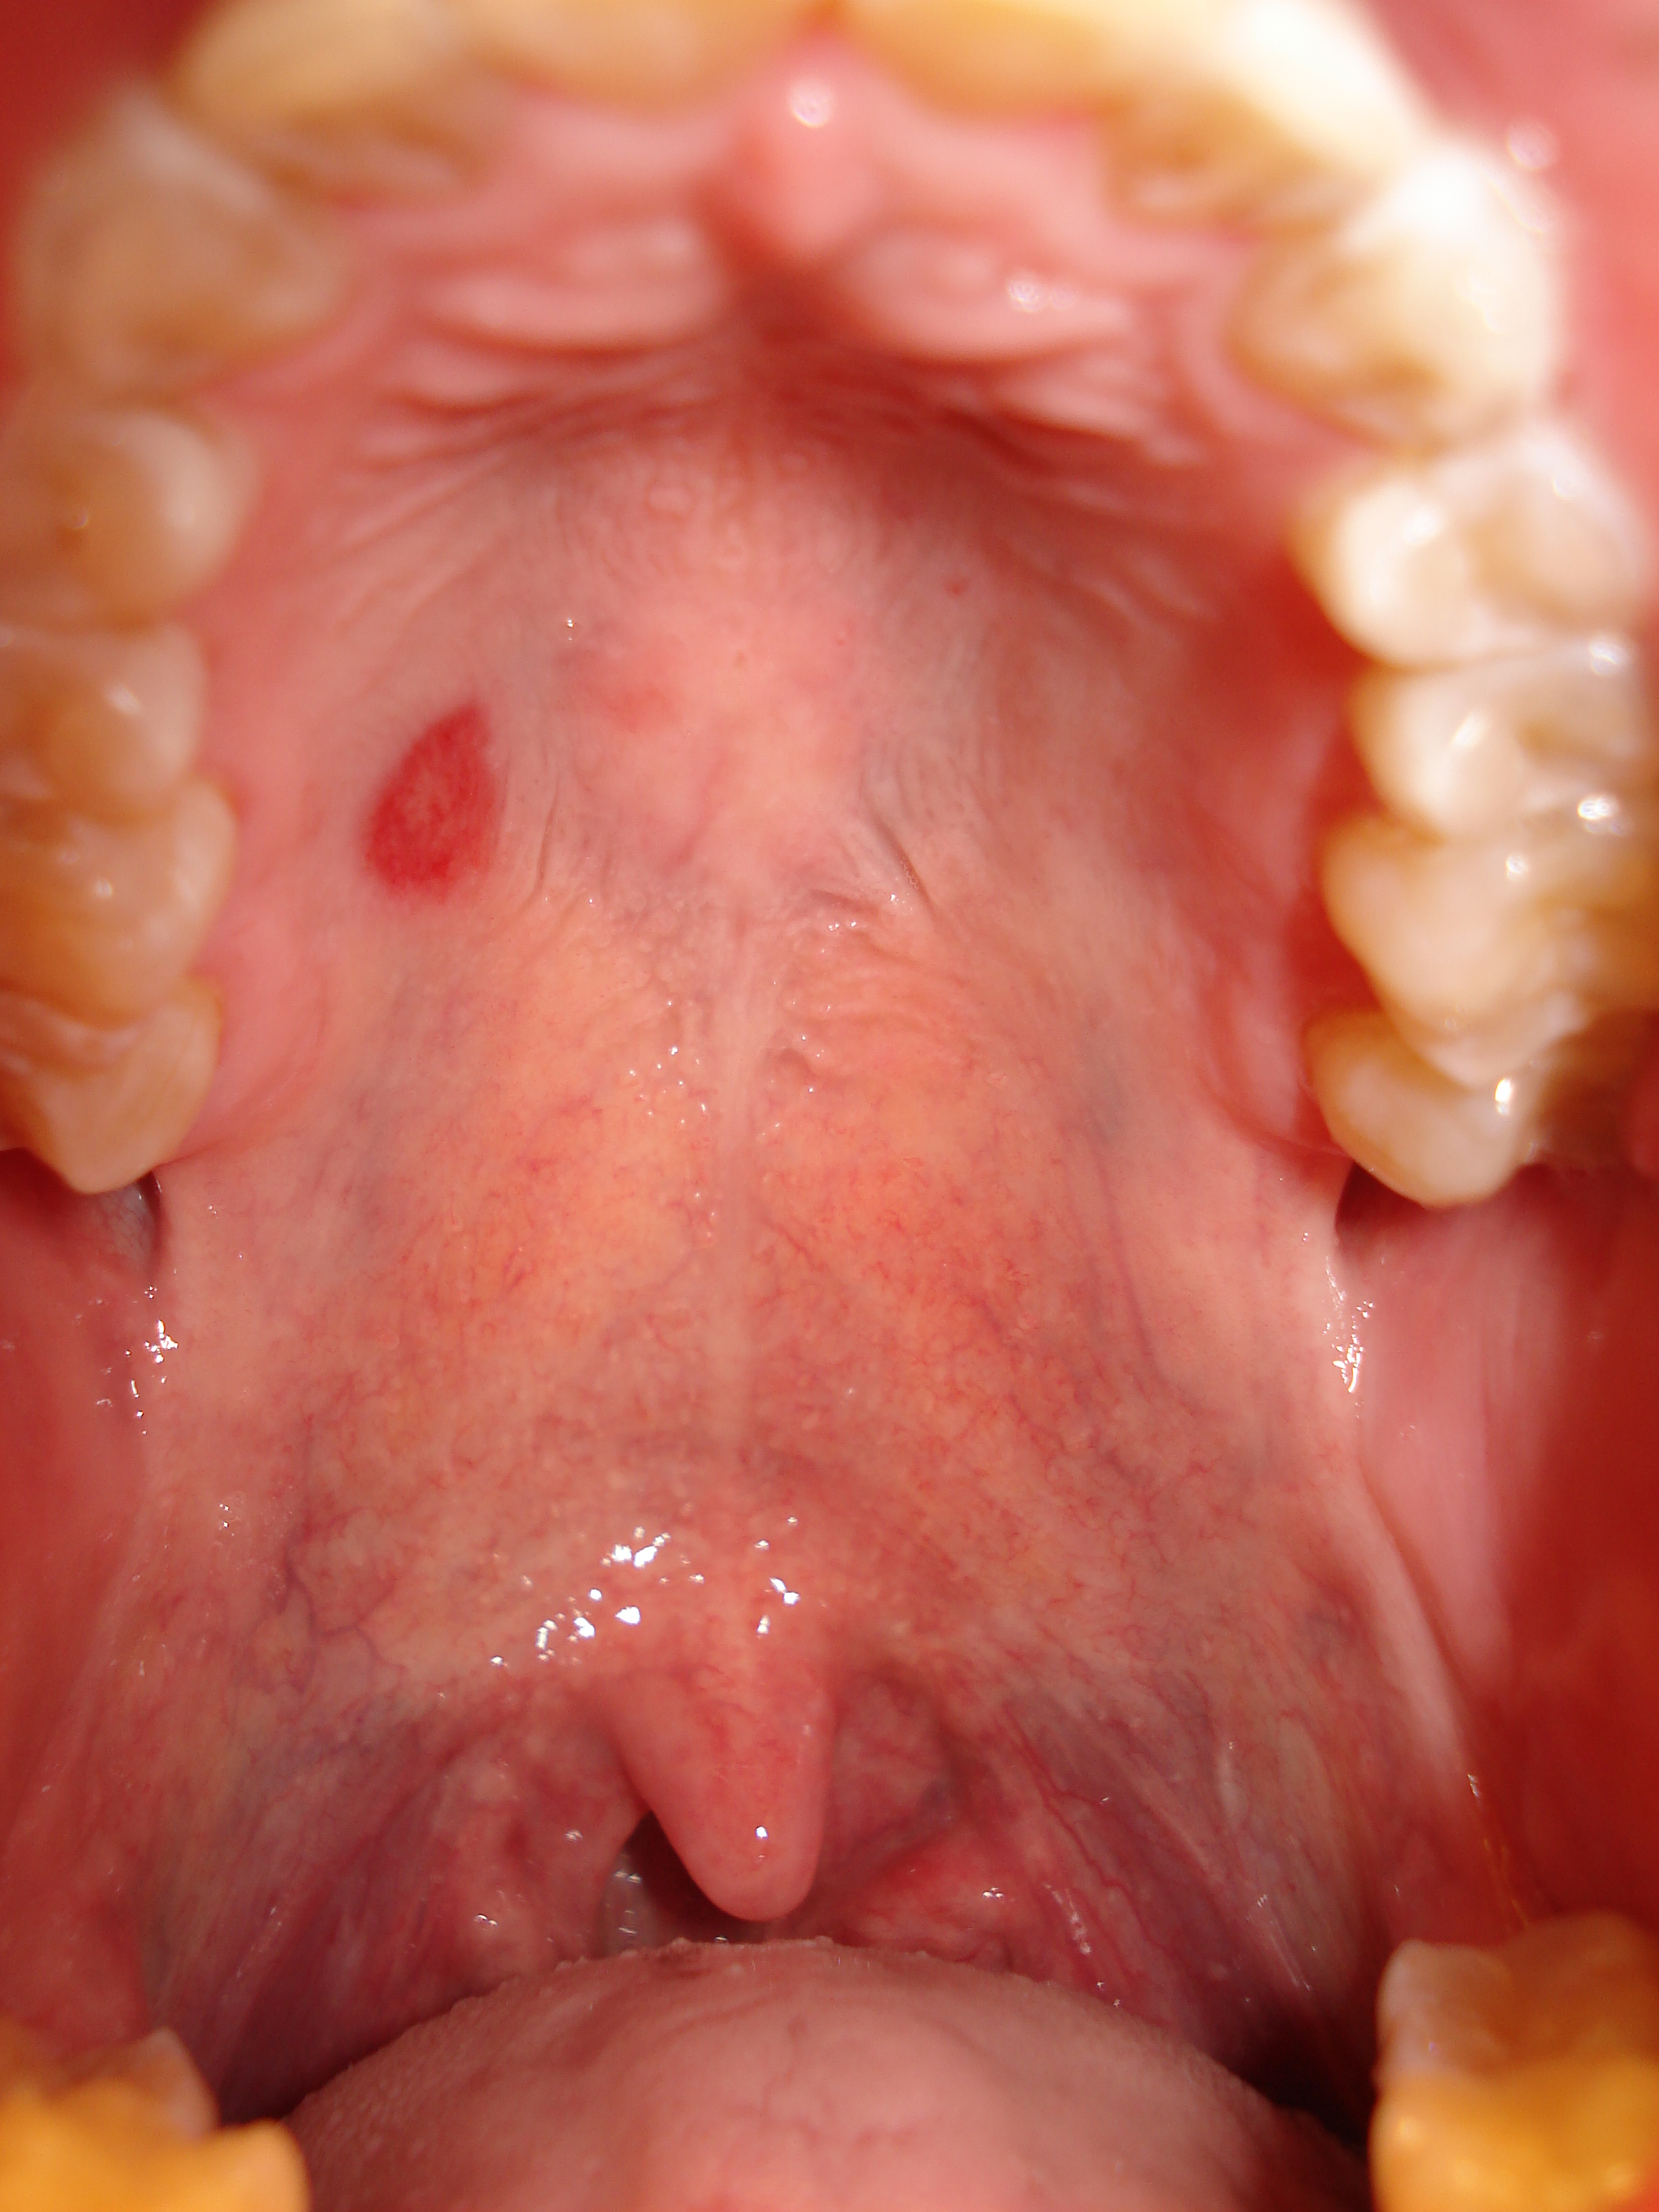 Red spots on roof of the mouth